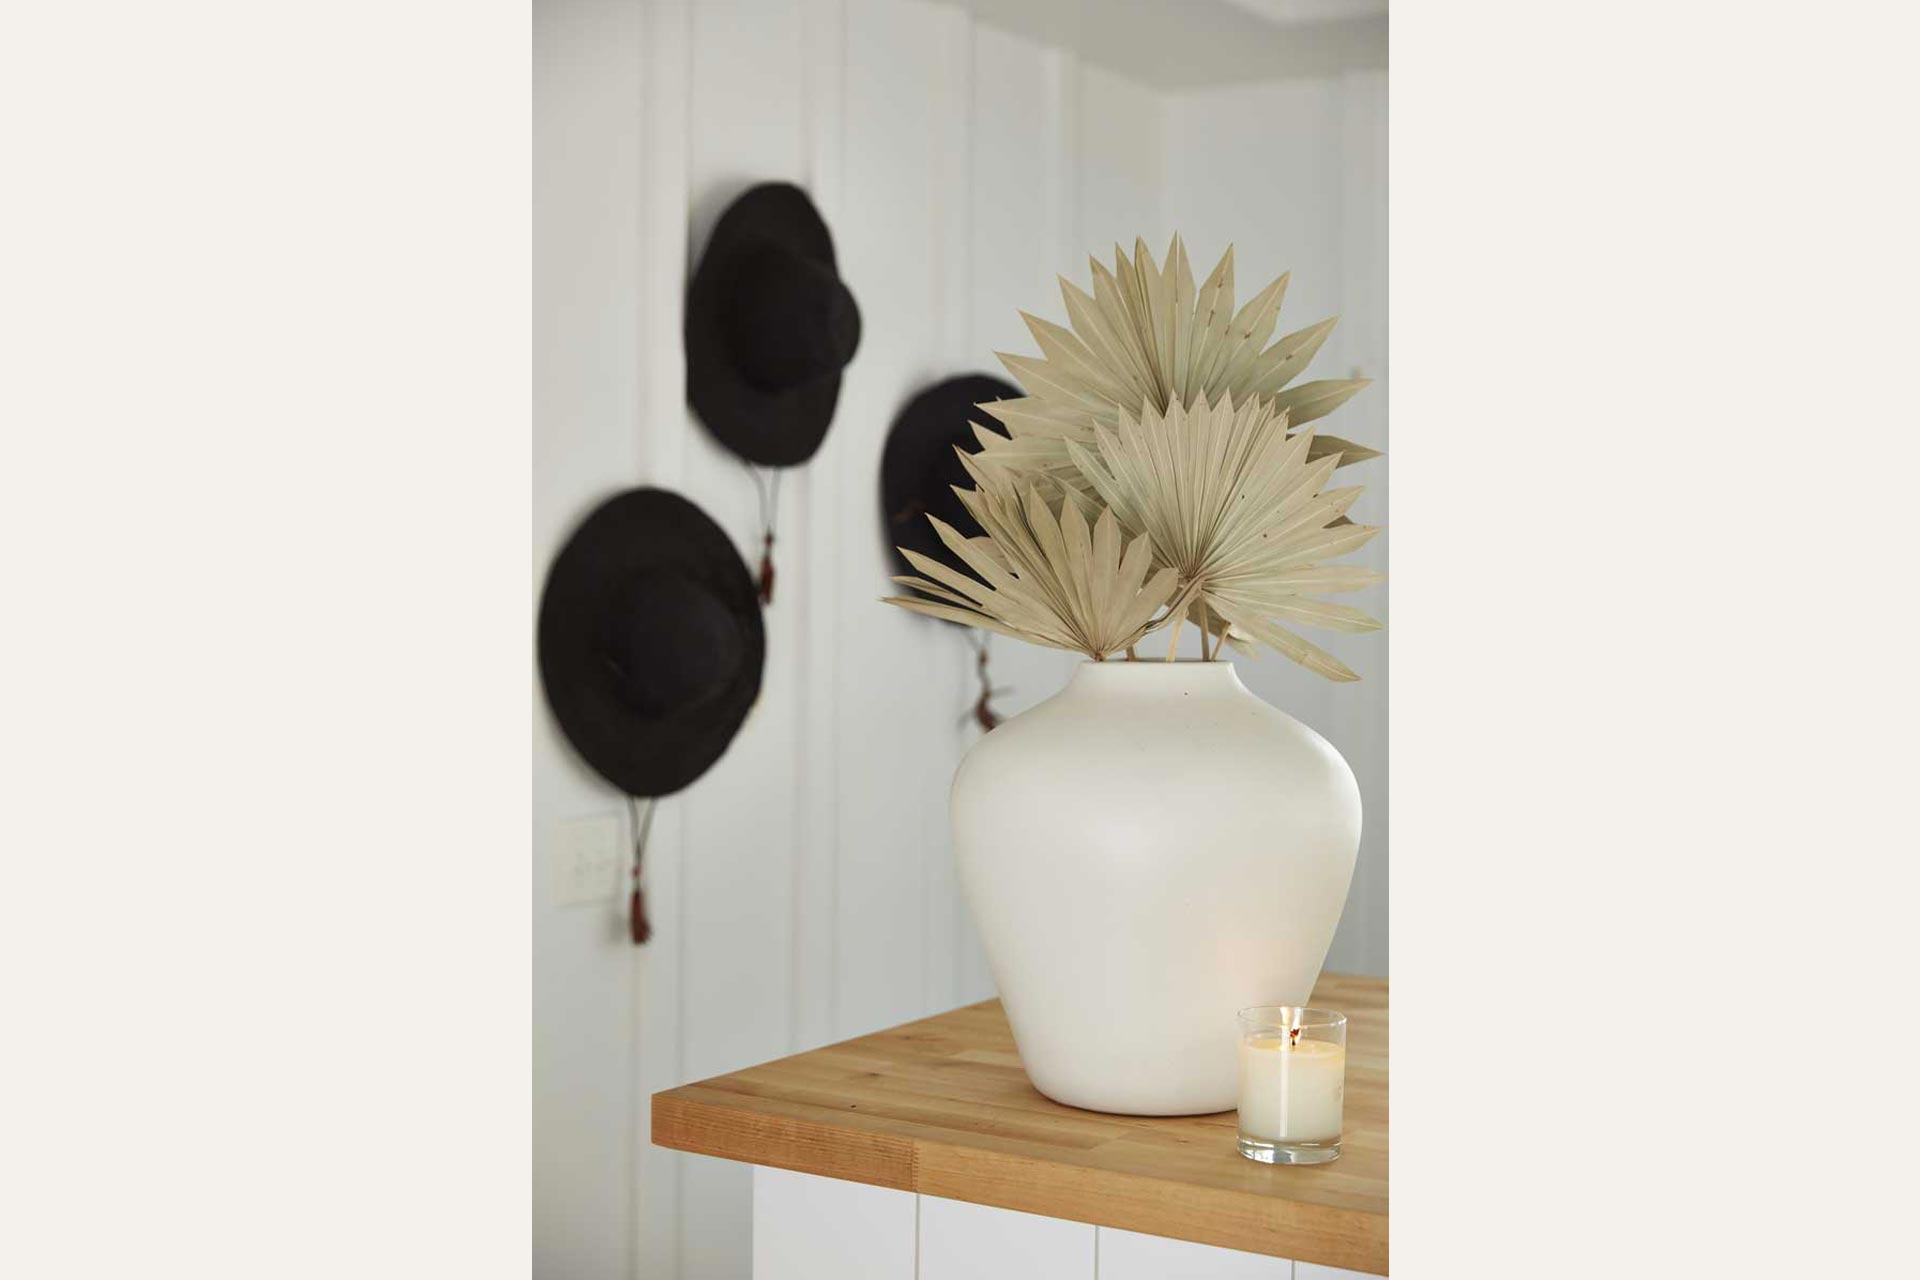 black sun hats hanging in front of vase